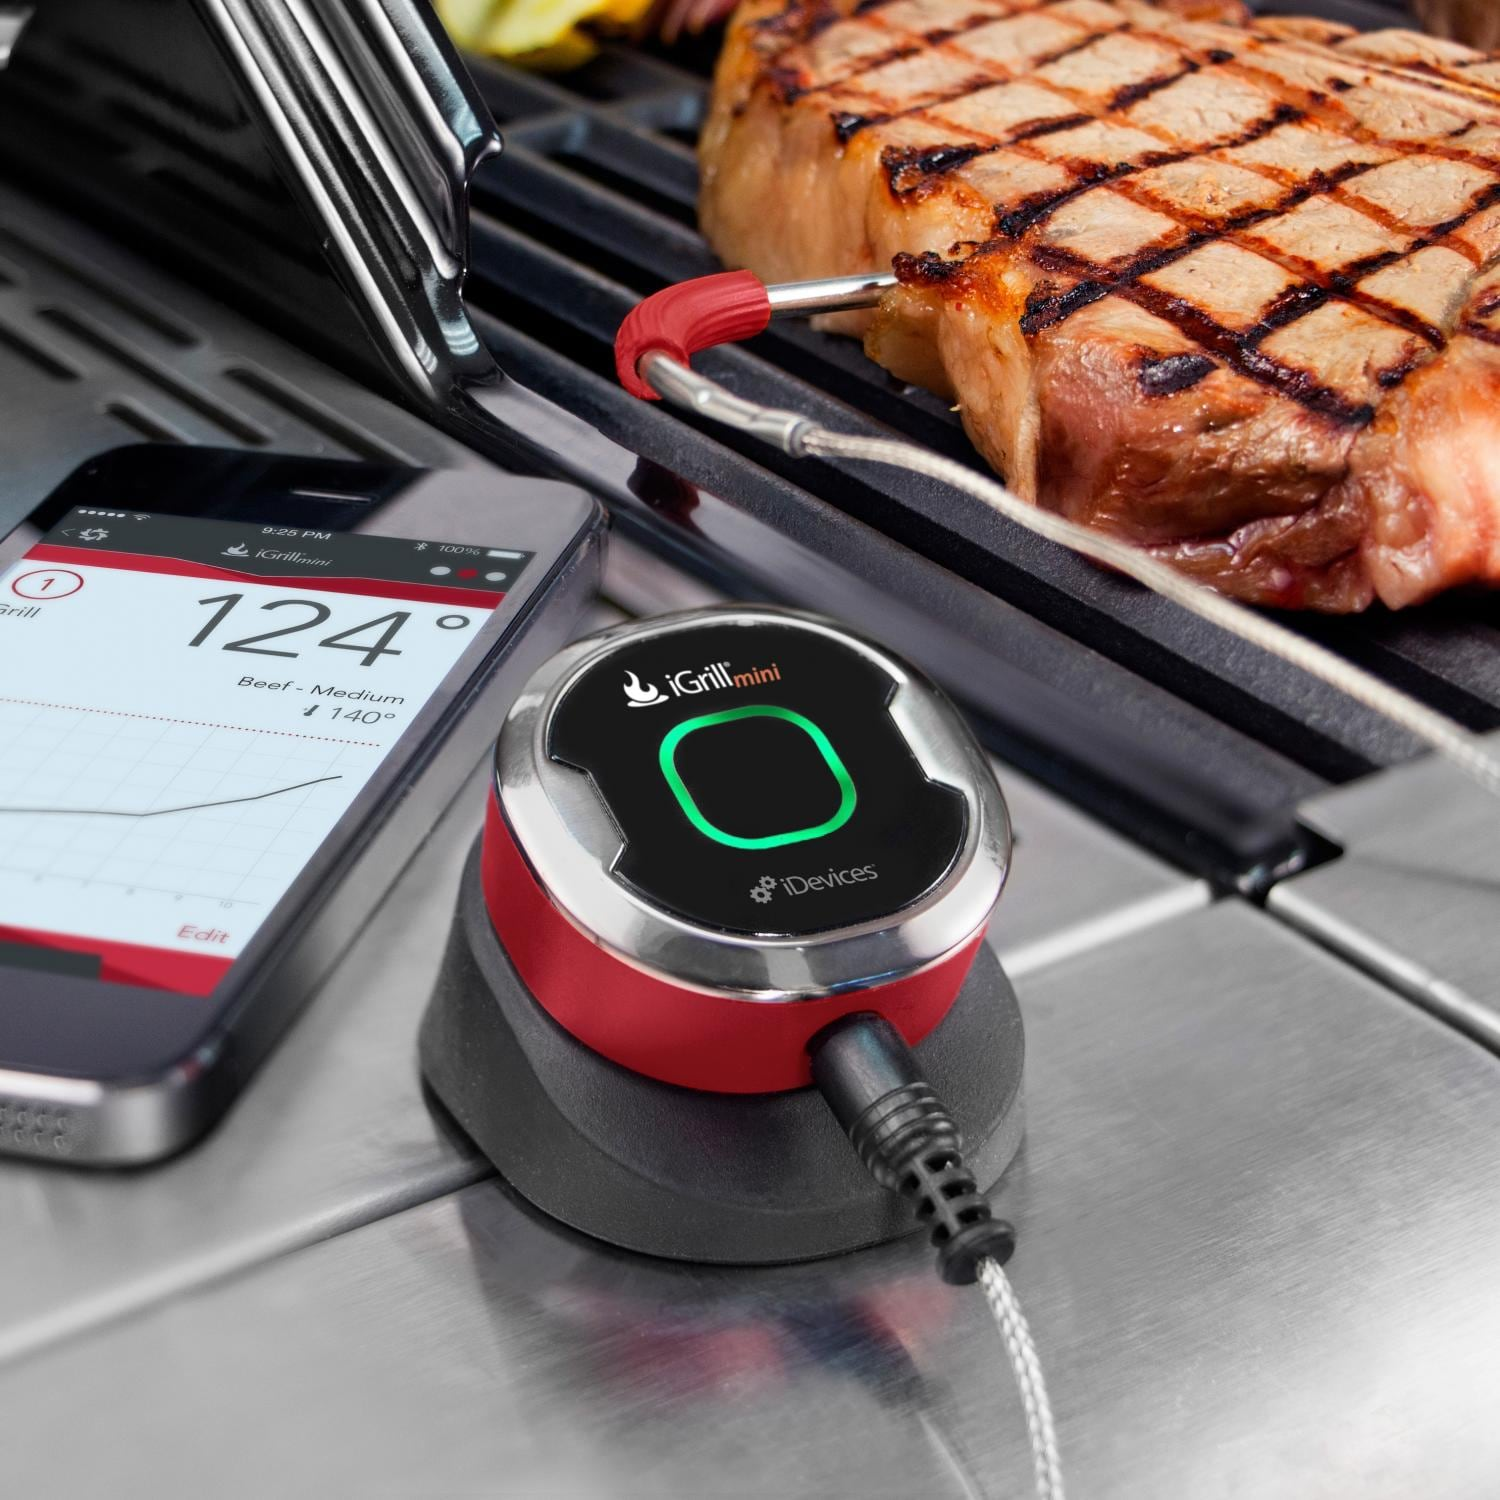 weber igr0001p5 igrill mini smart wireless bluetooth thermometer. Black Bedroom Furniture Sets. Home Design Ideas